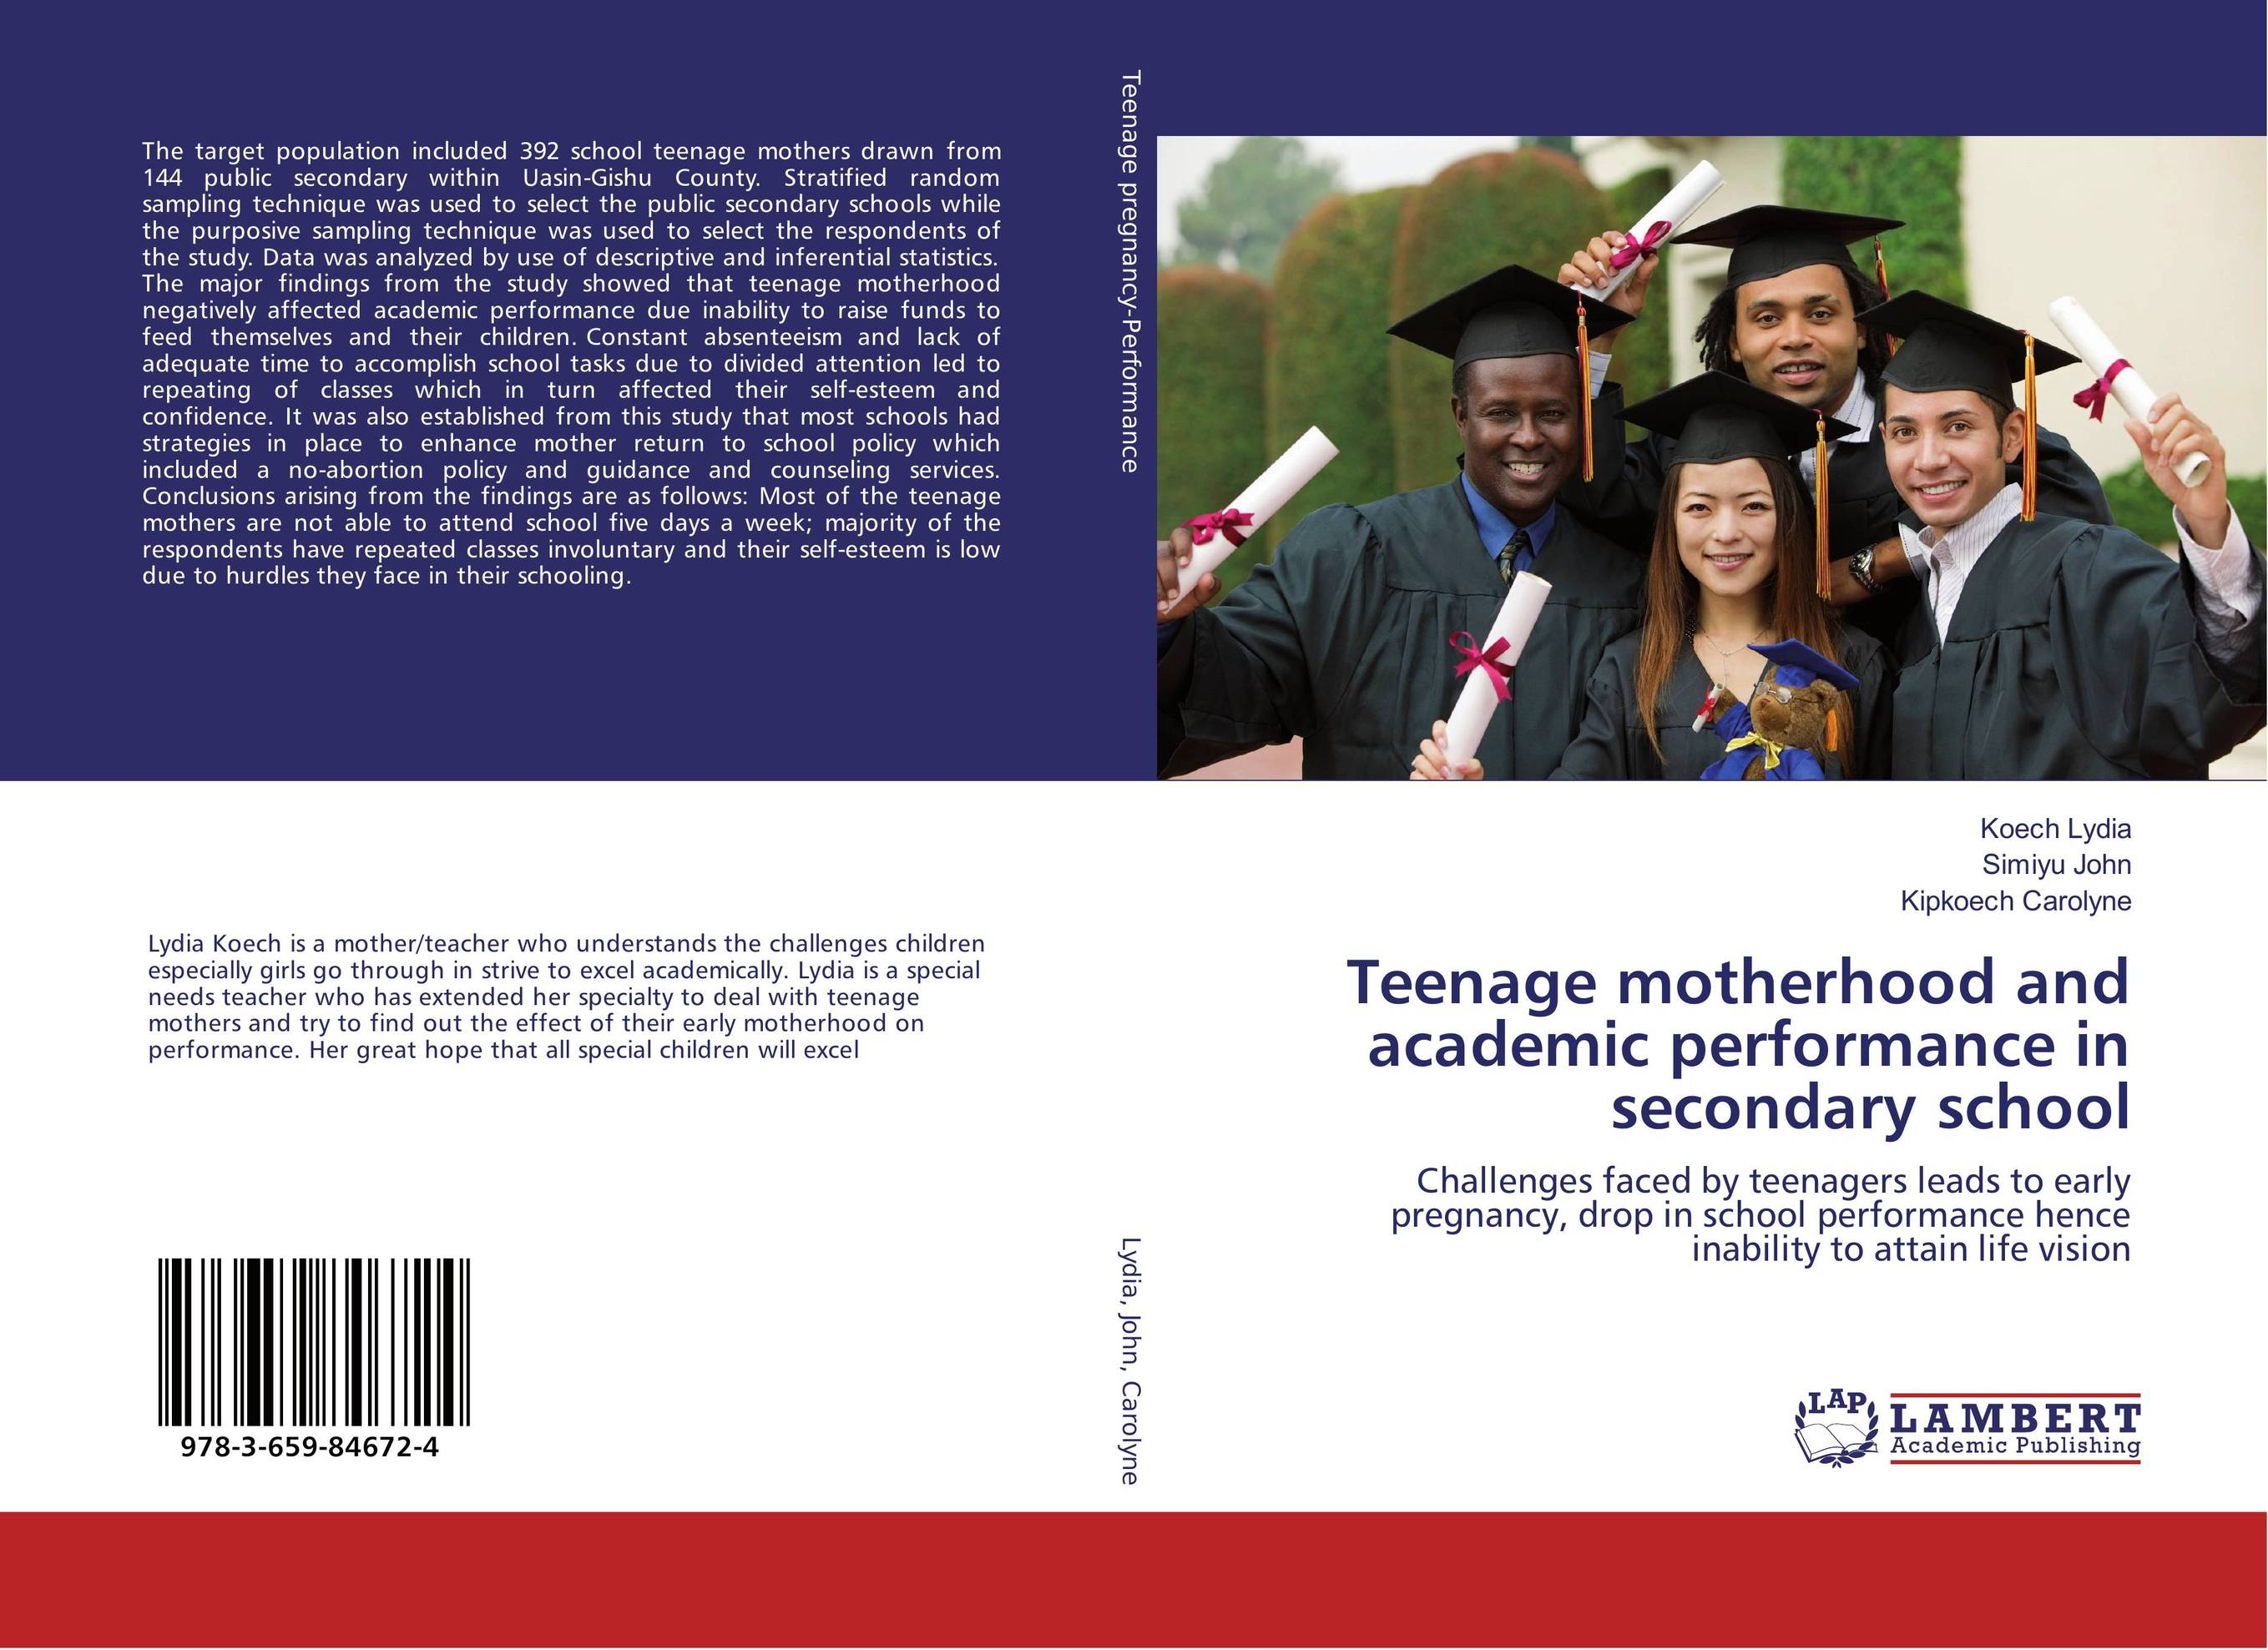 Teenage motherhood and academic performance in secondary school liebherr cuwb 3311